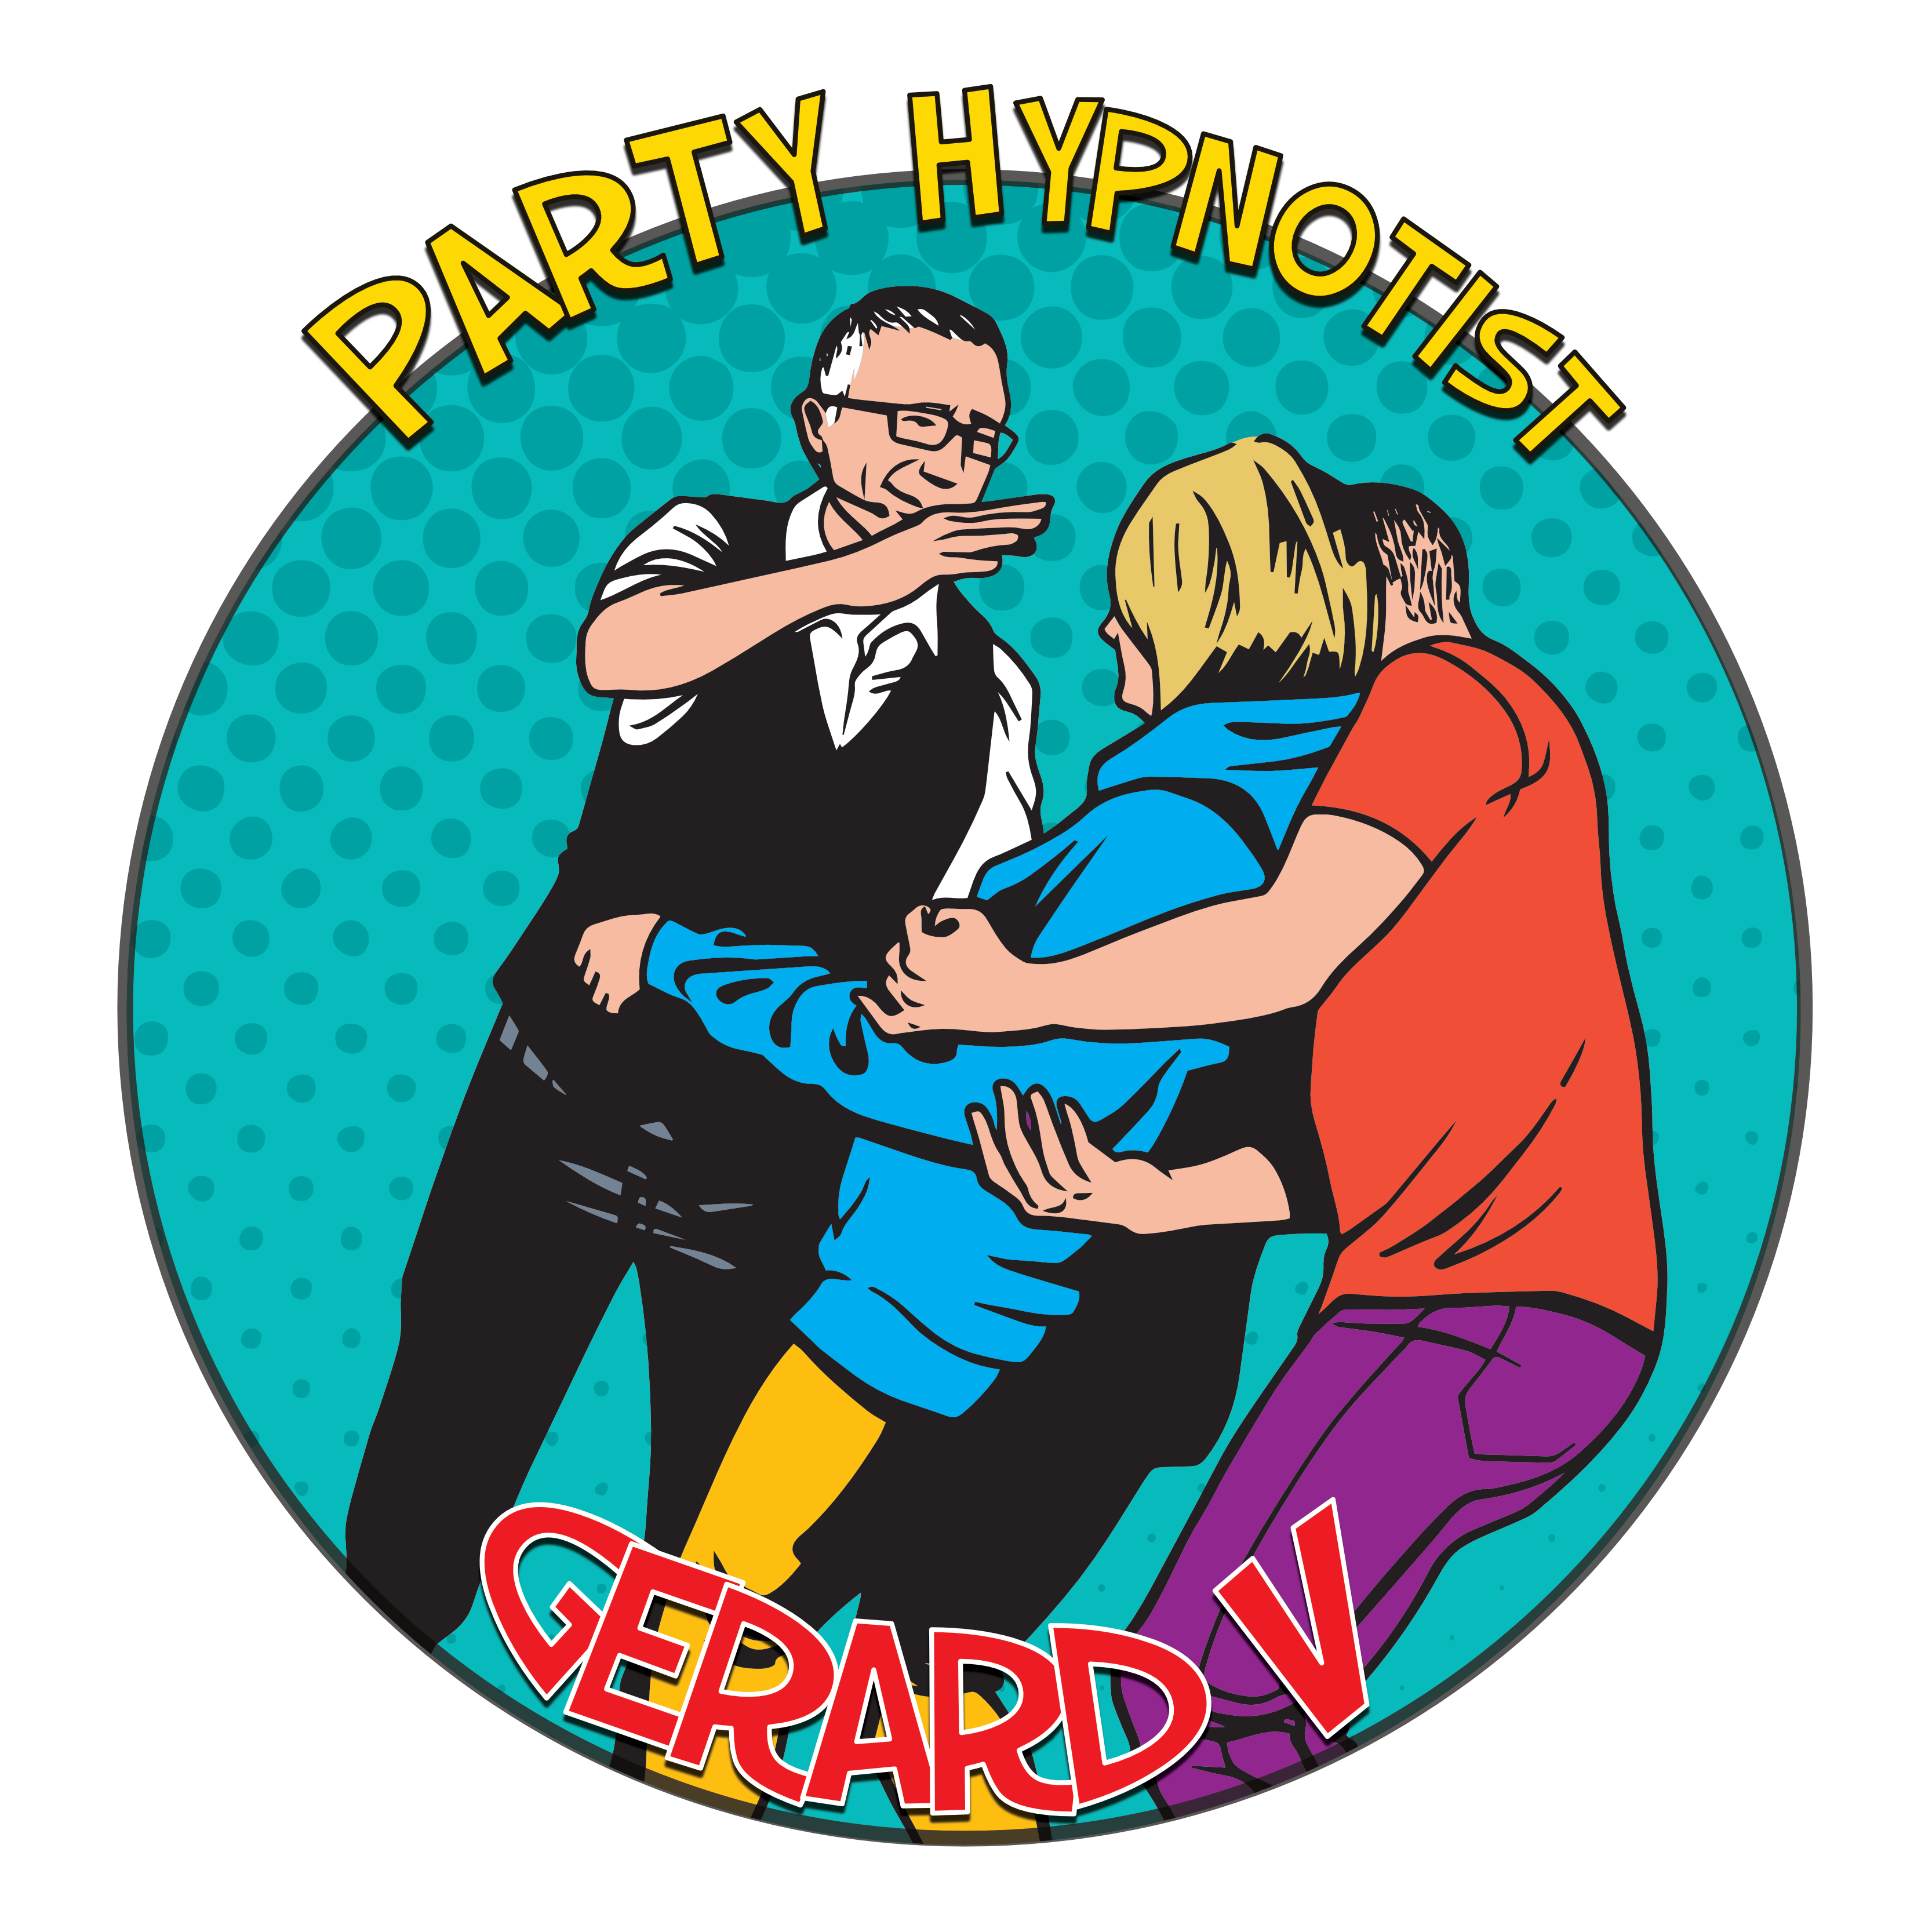 Hypnotist shows for small. Teen clipart staff party